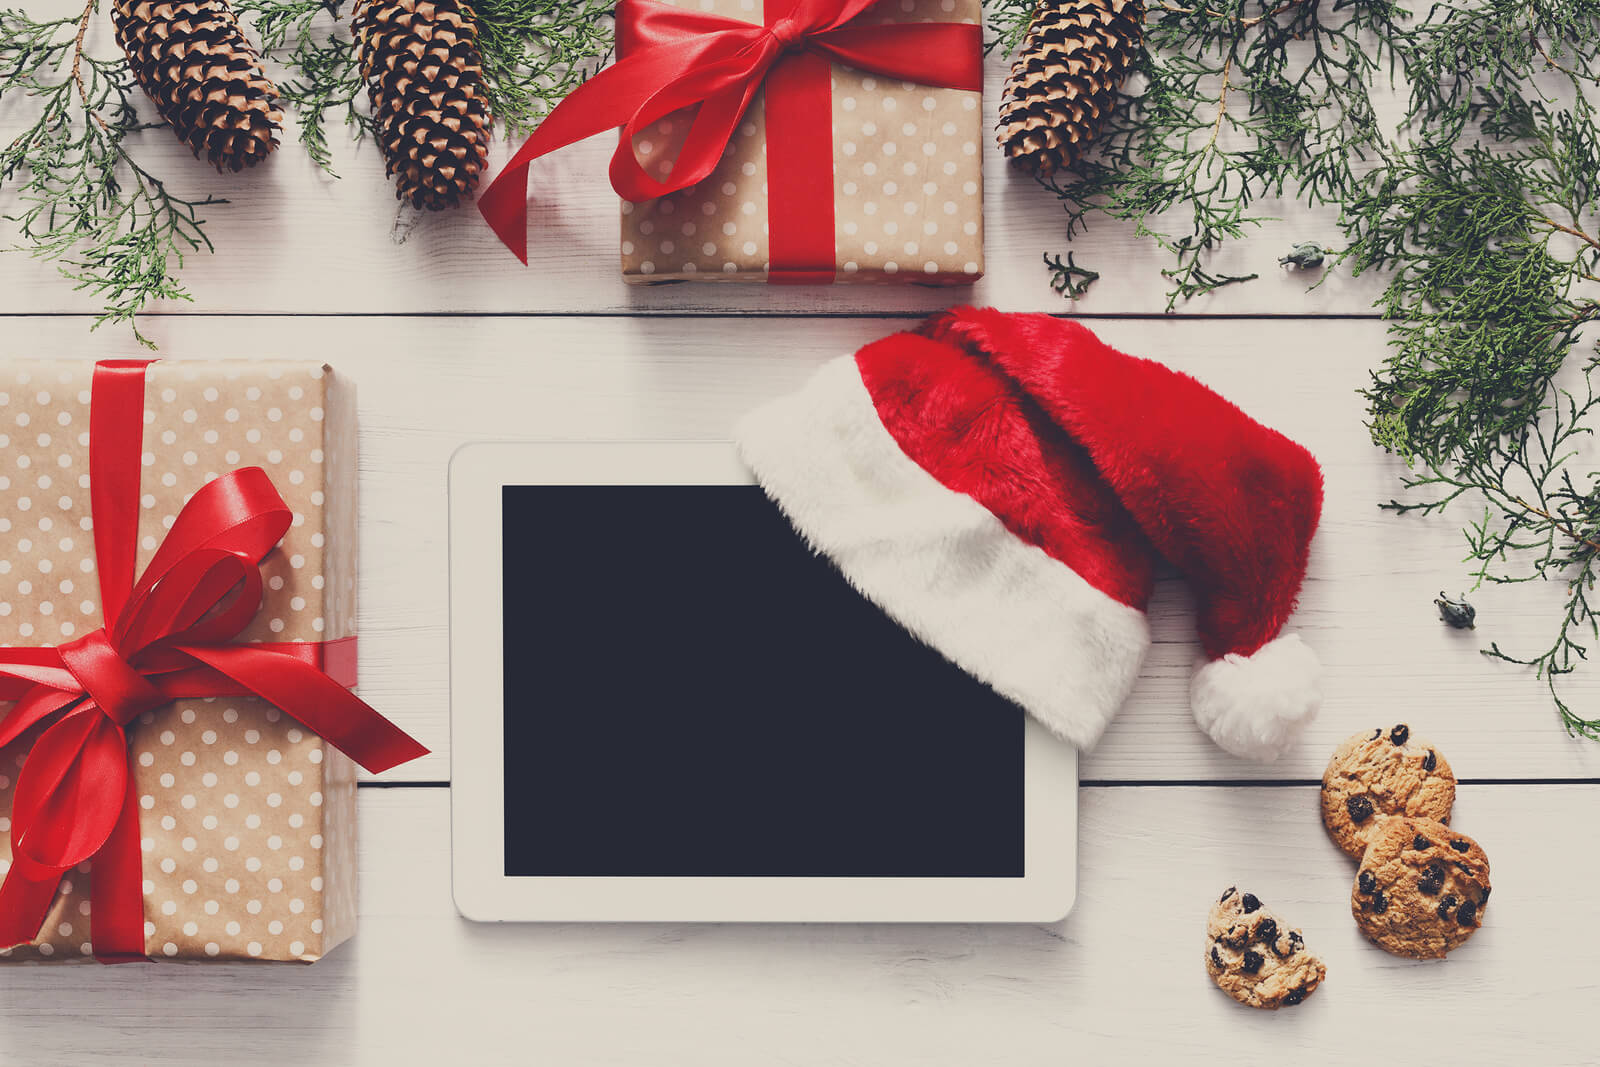 How to Attract More Customers this Holiday Season